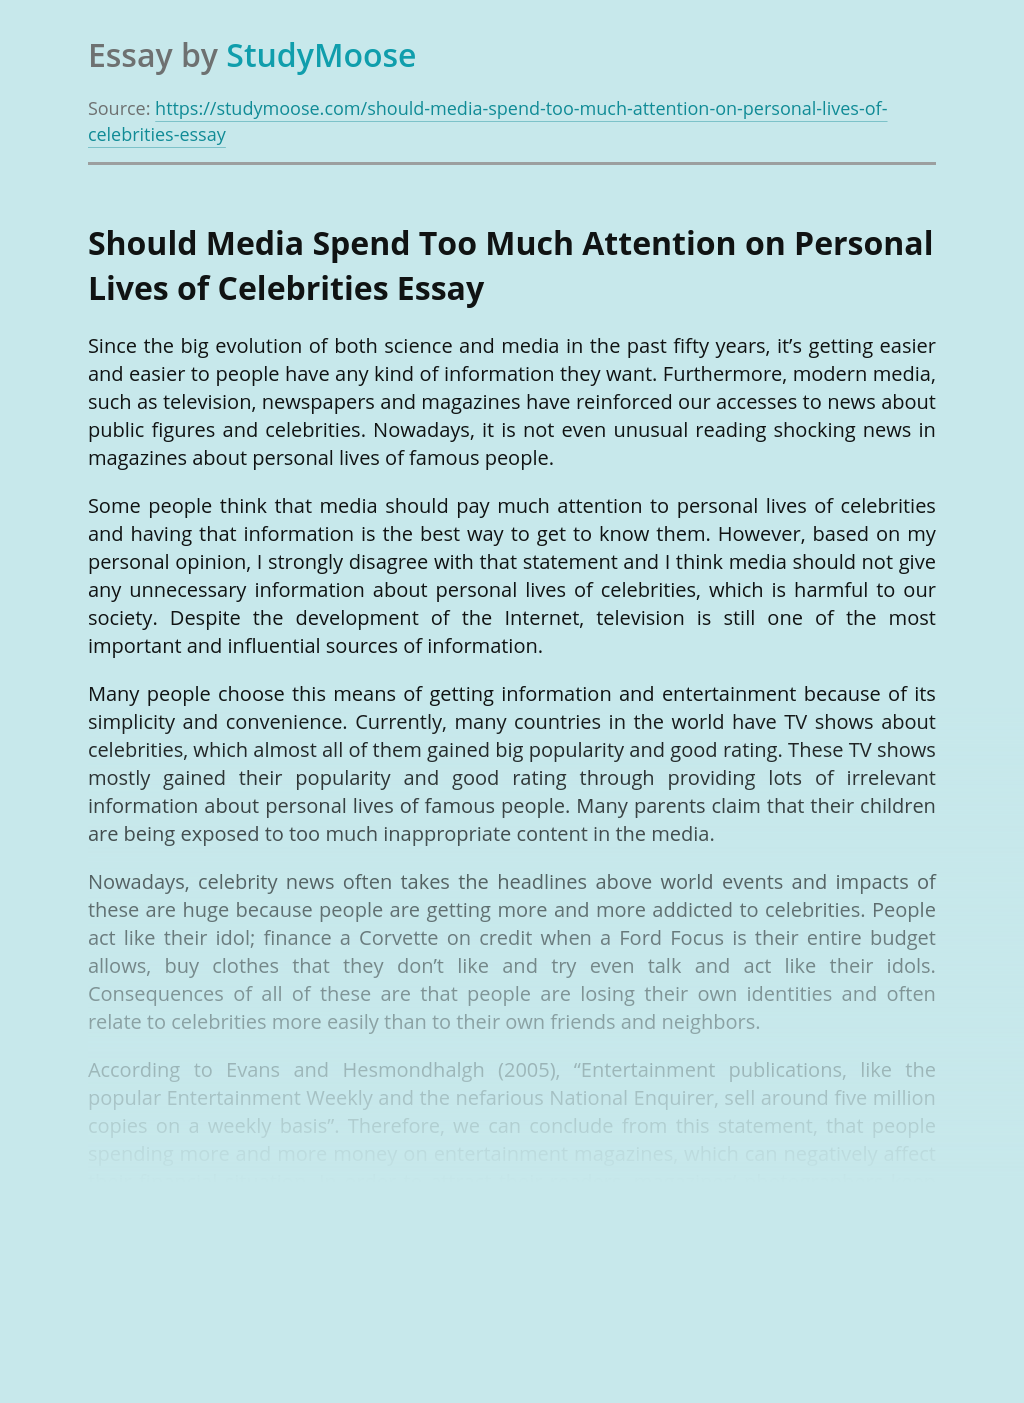 Should Media Spend Too Much Attention on Personal Lives of Celebrities